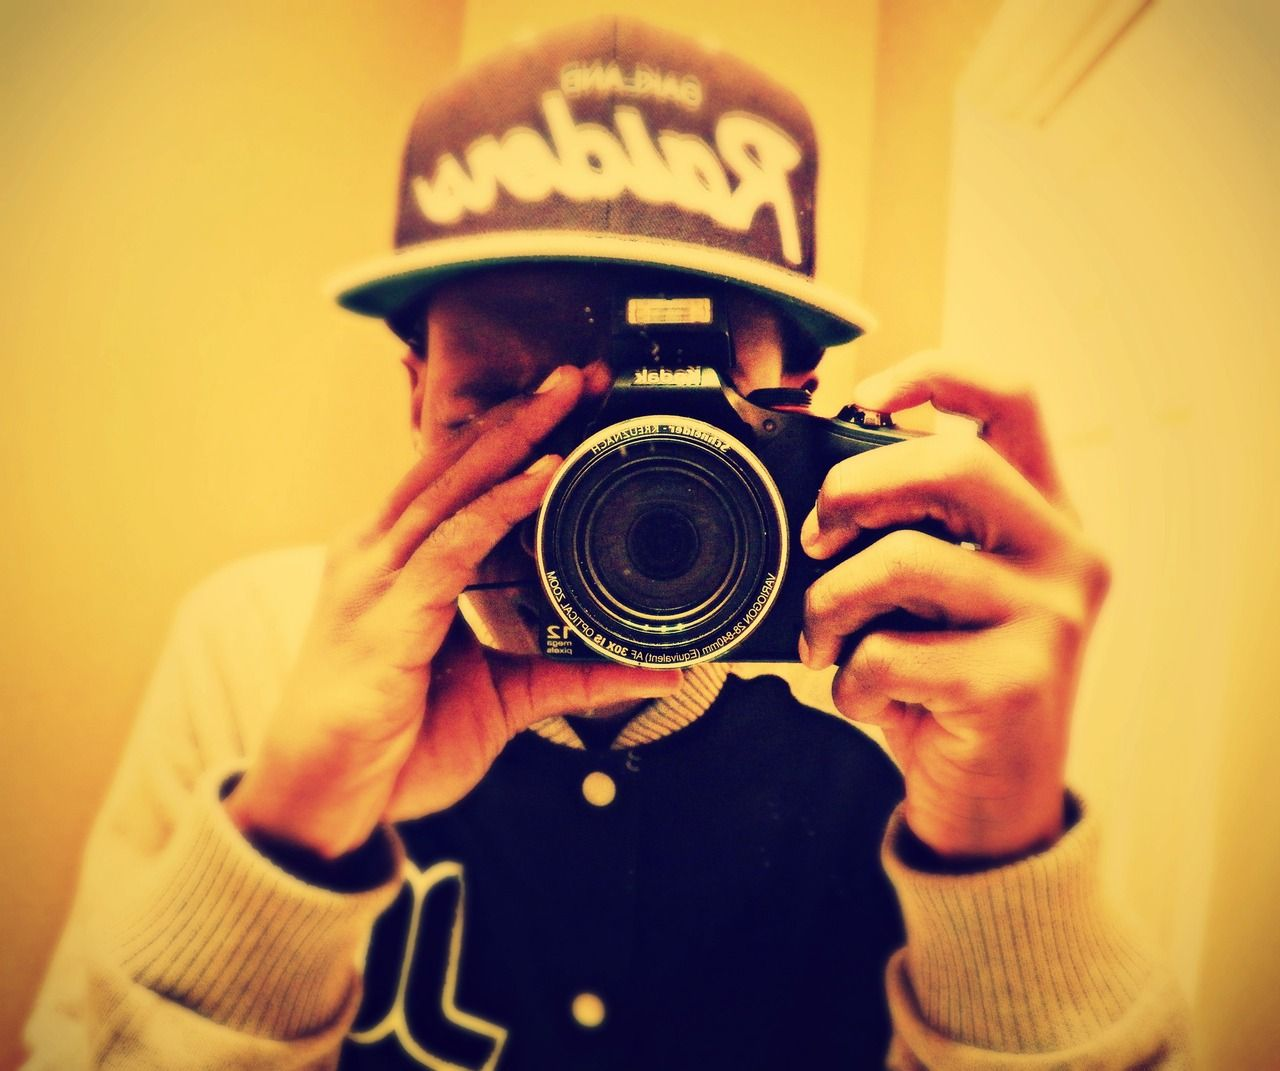 photography, cute, swag, dope, camera | Photography | Pinterest ...